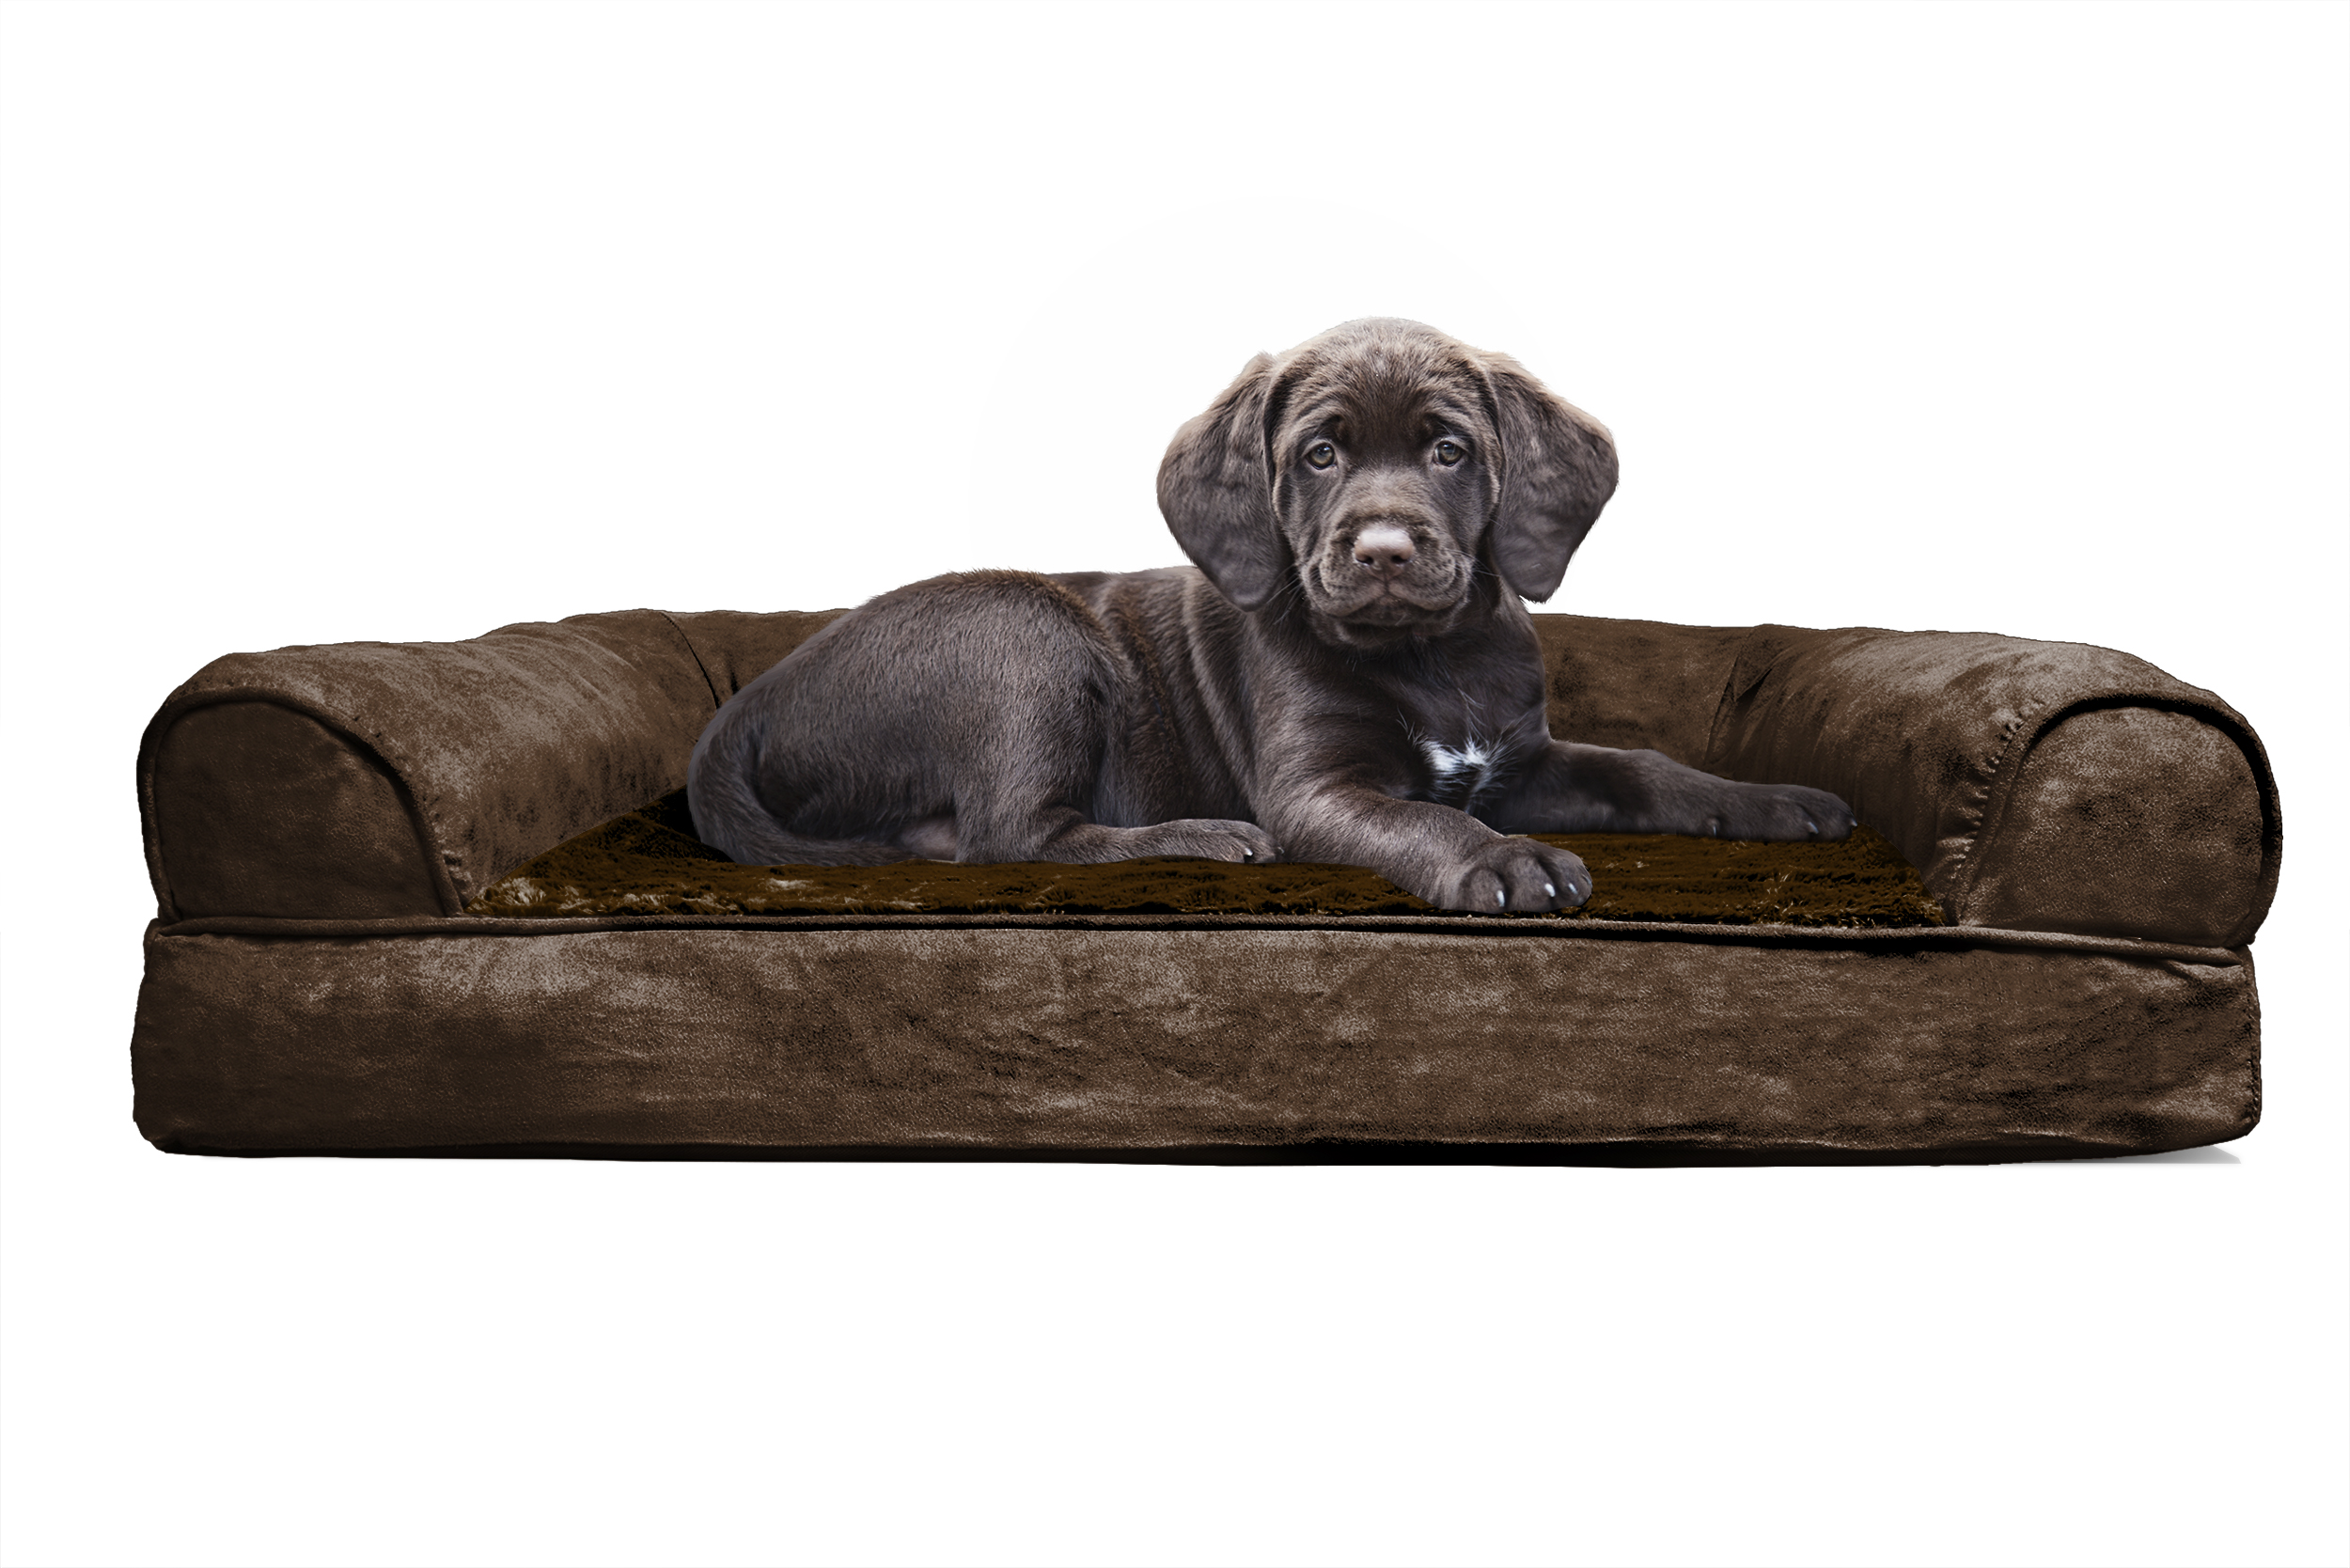 FurHaven Jumbo Plush & Suede Orthopedic Sofa Pet Bed for Dogs and